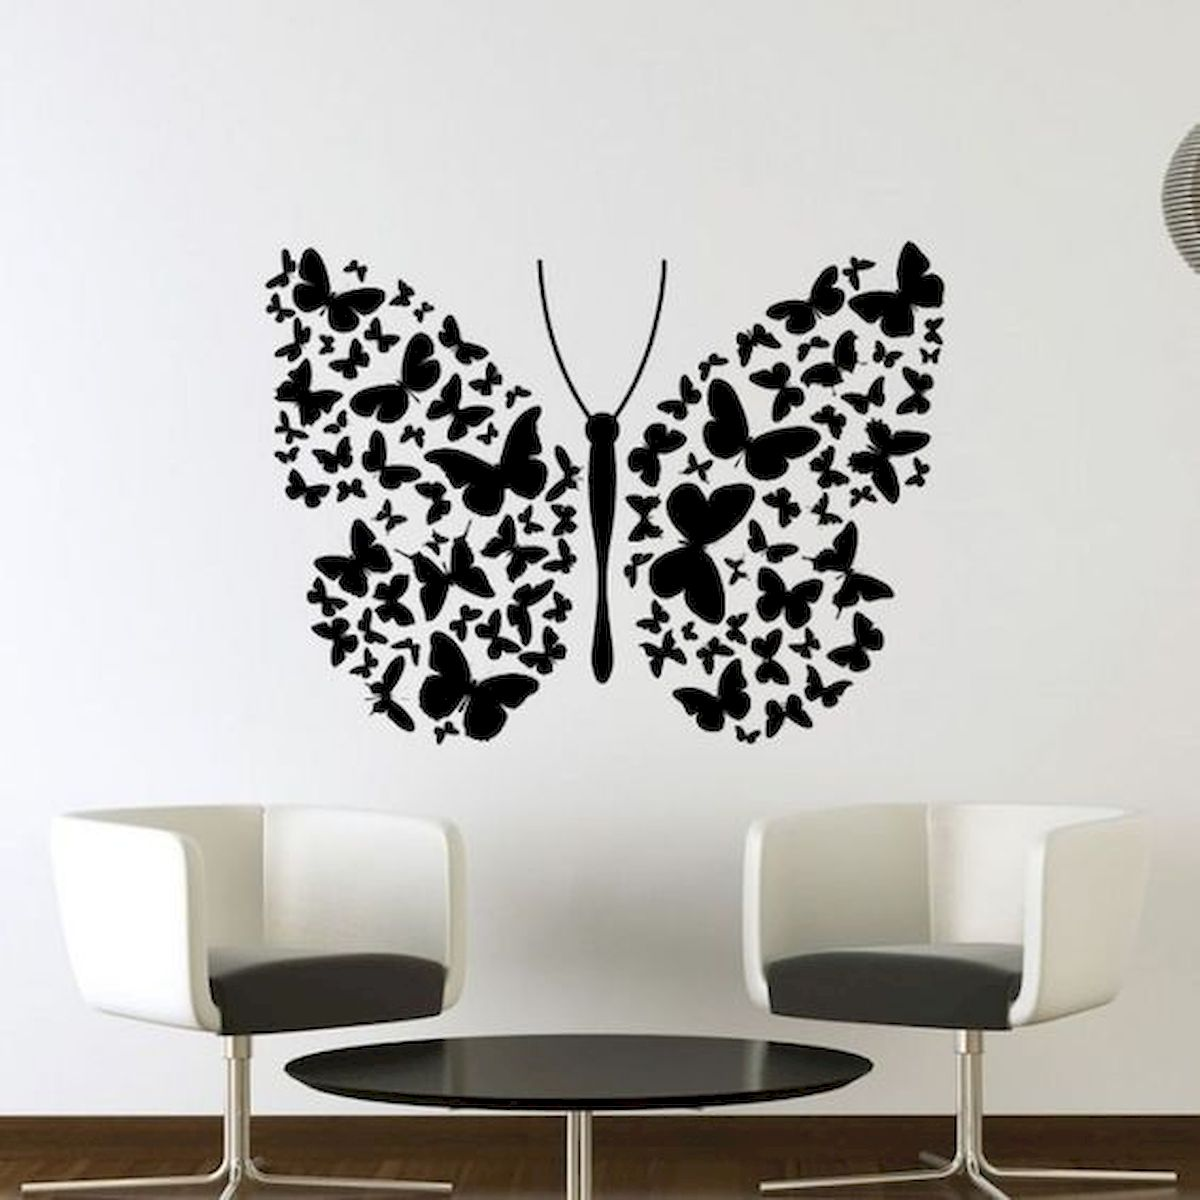 44 Easy but Awesome DIY Wall Painting Ideas to Decorate Your Home (17)